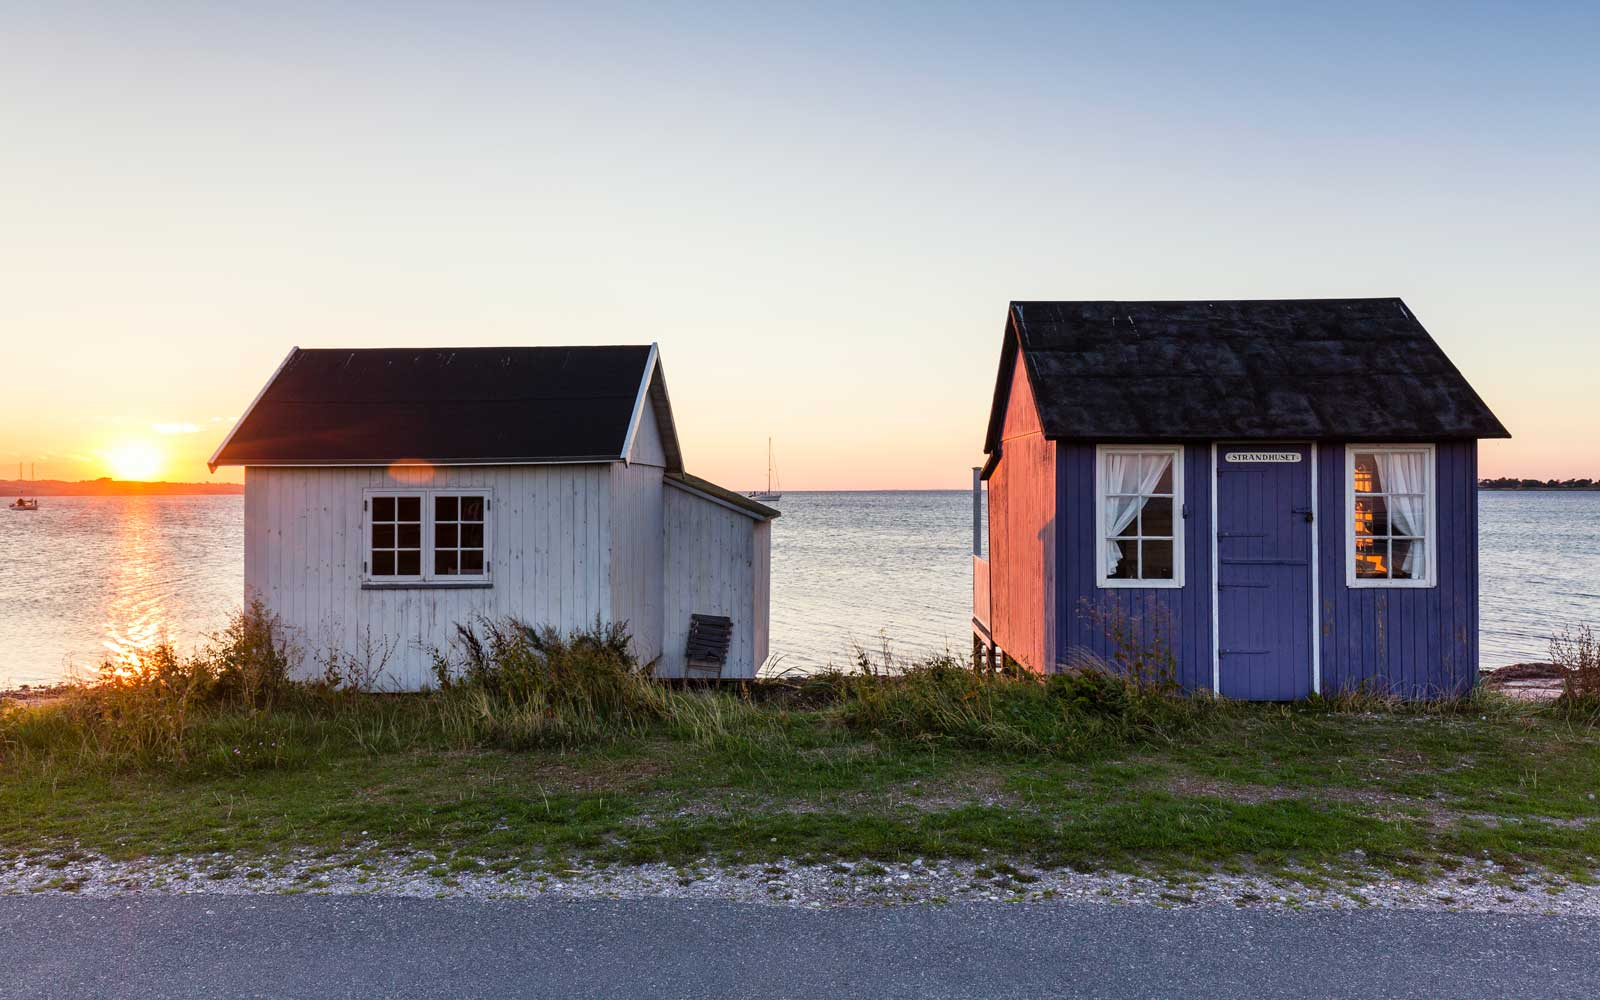 Beach huts at sunset, Aero Island, Denmark